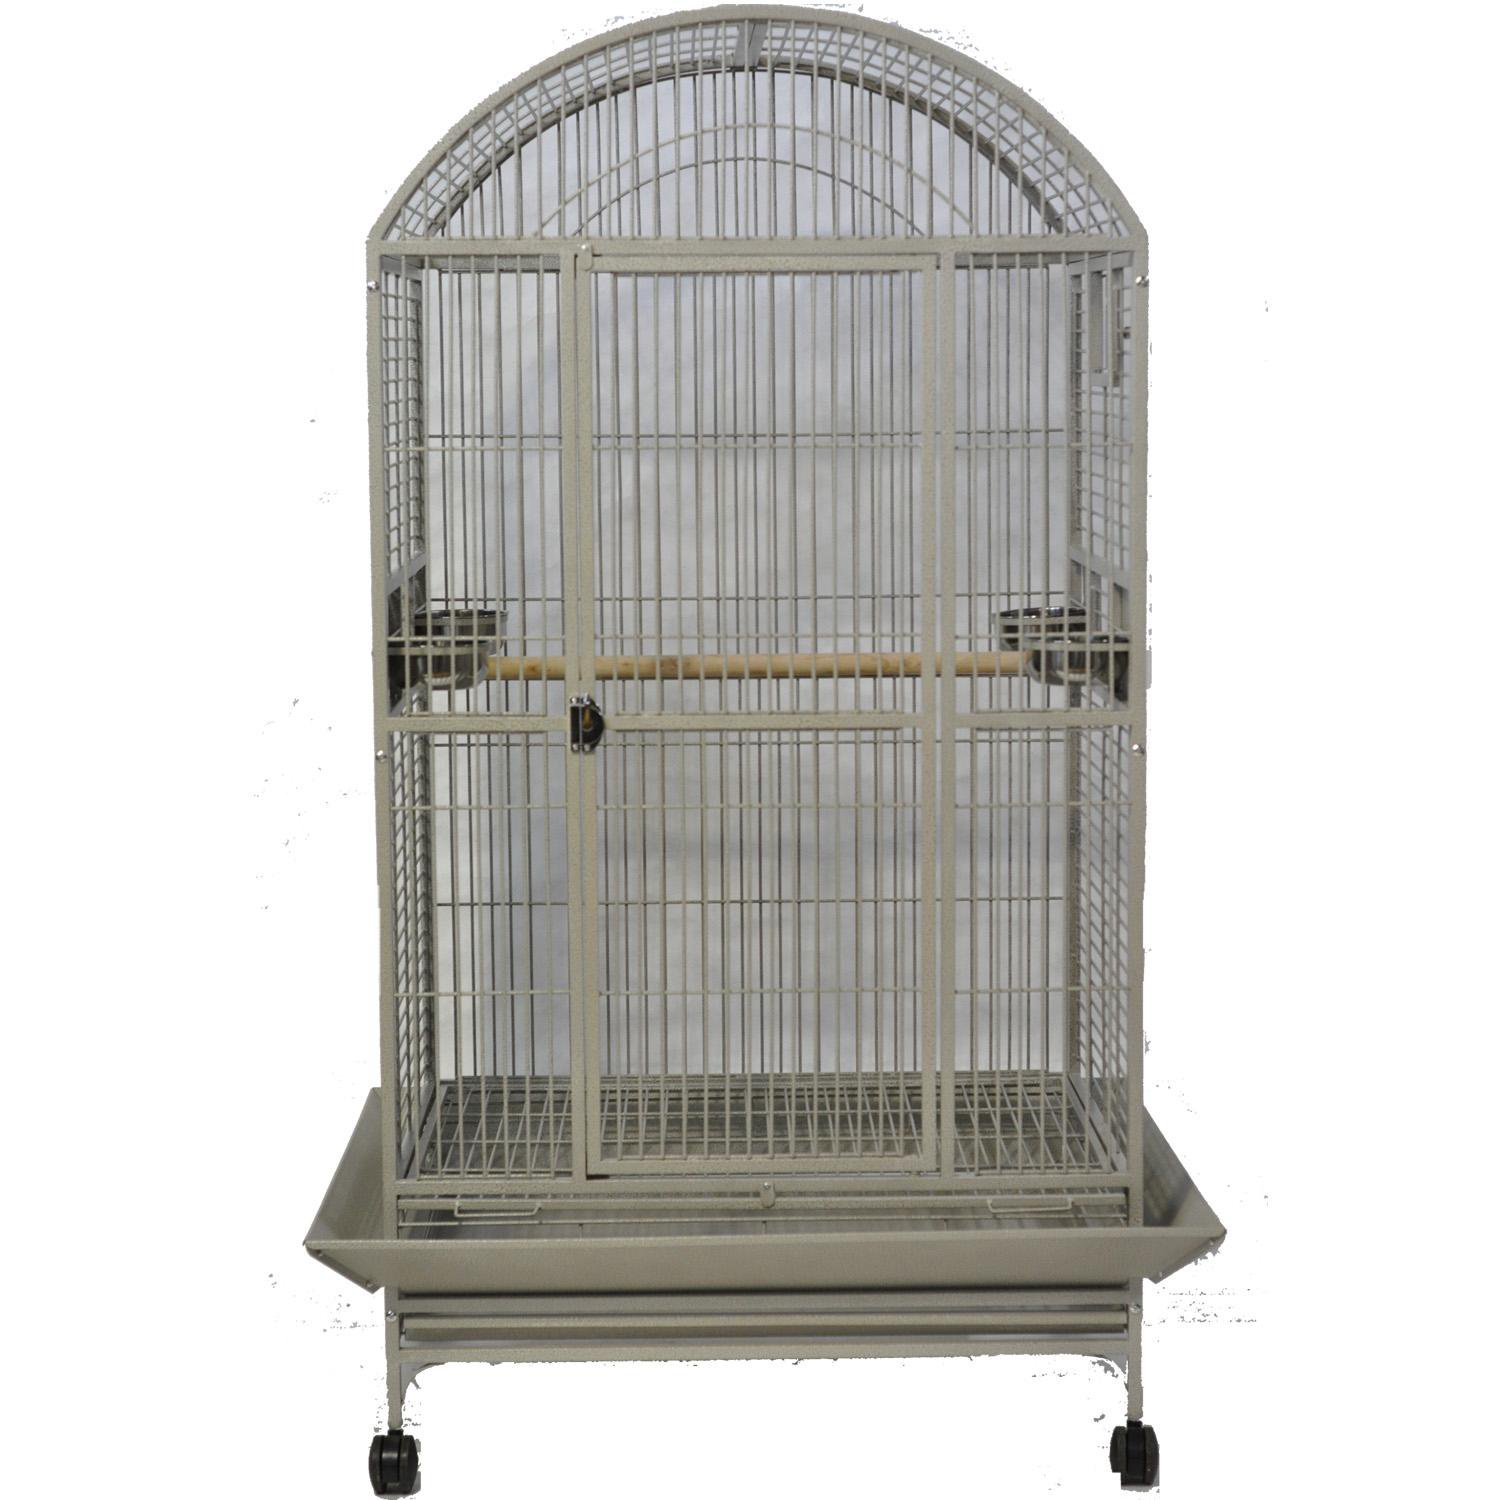 A&E Cage Company Stainless Steel Macaw Mansion Dometop Bird Cage